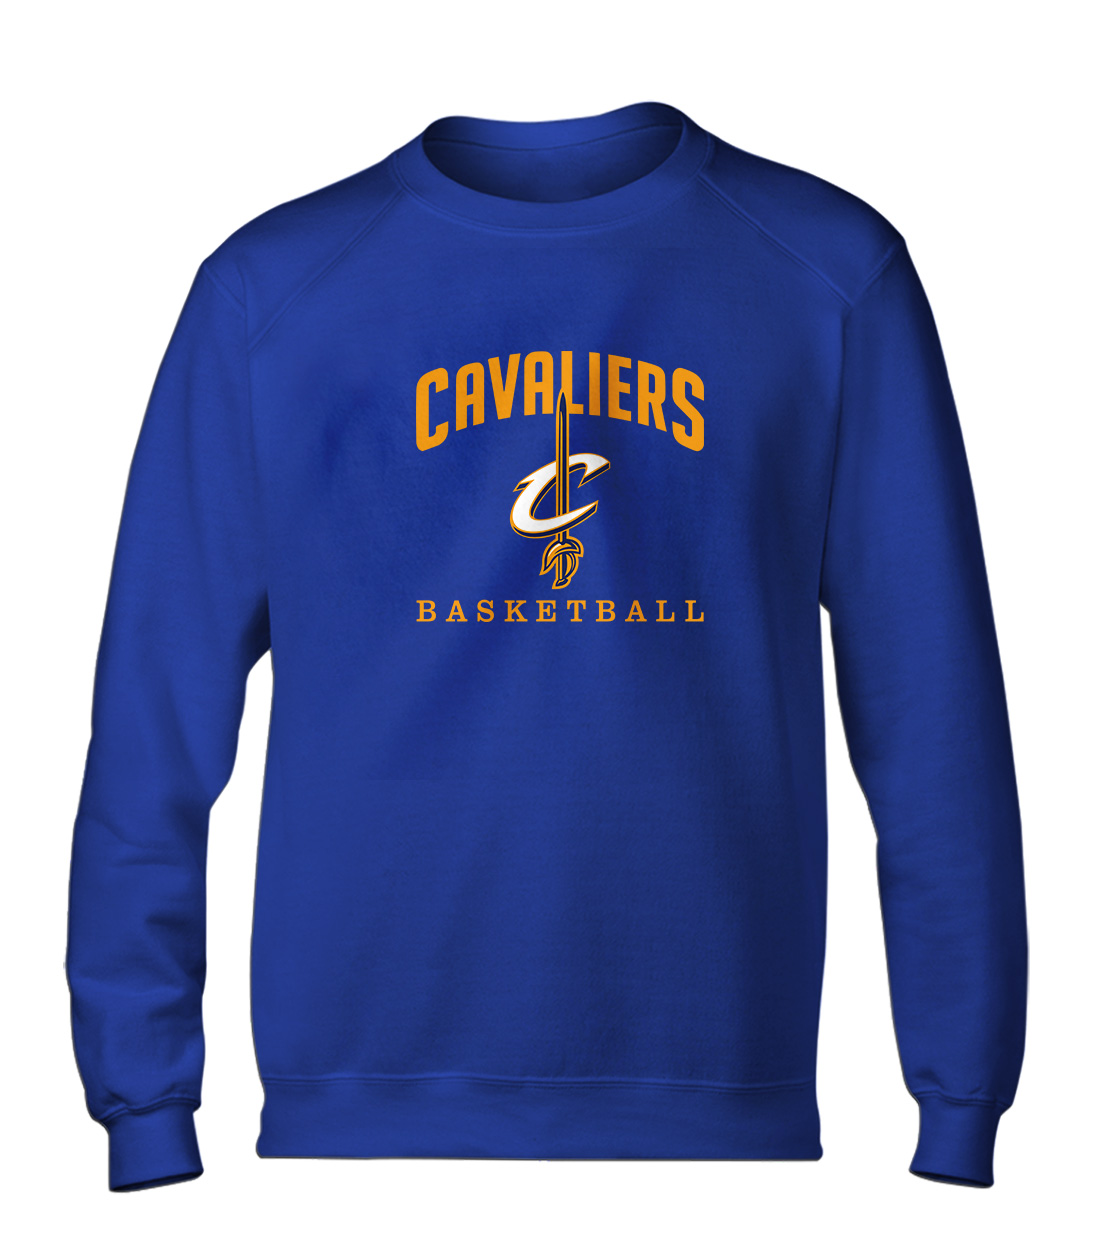 Cleveland Cavaliers Basic (BSC-blue-61-NBA-CLE-CAVS.ARCH)